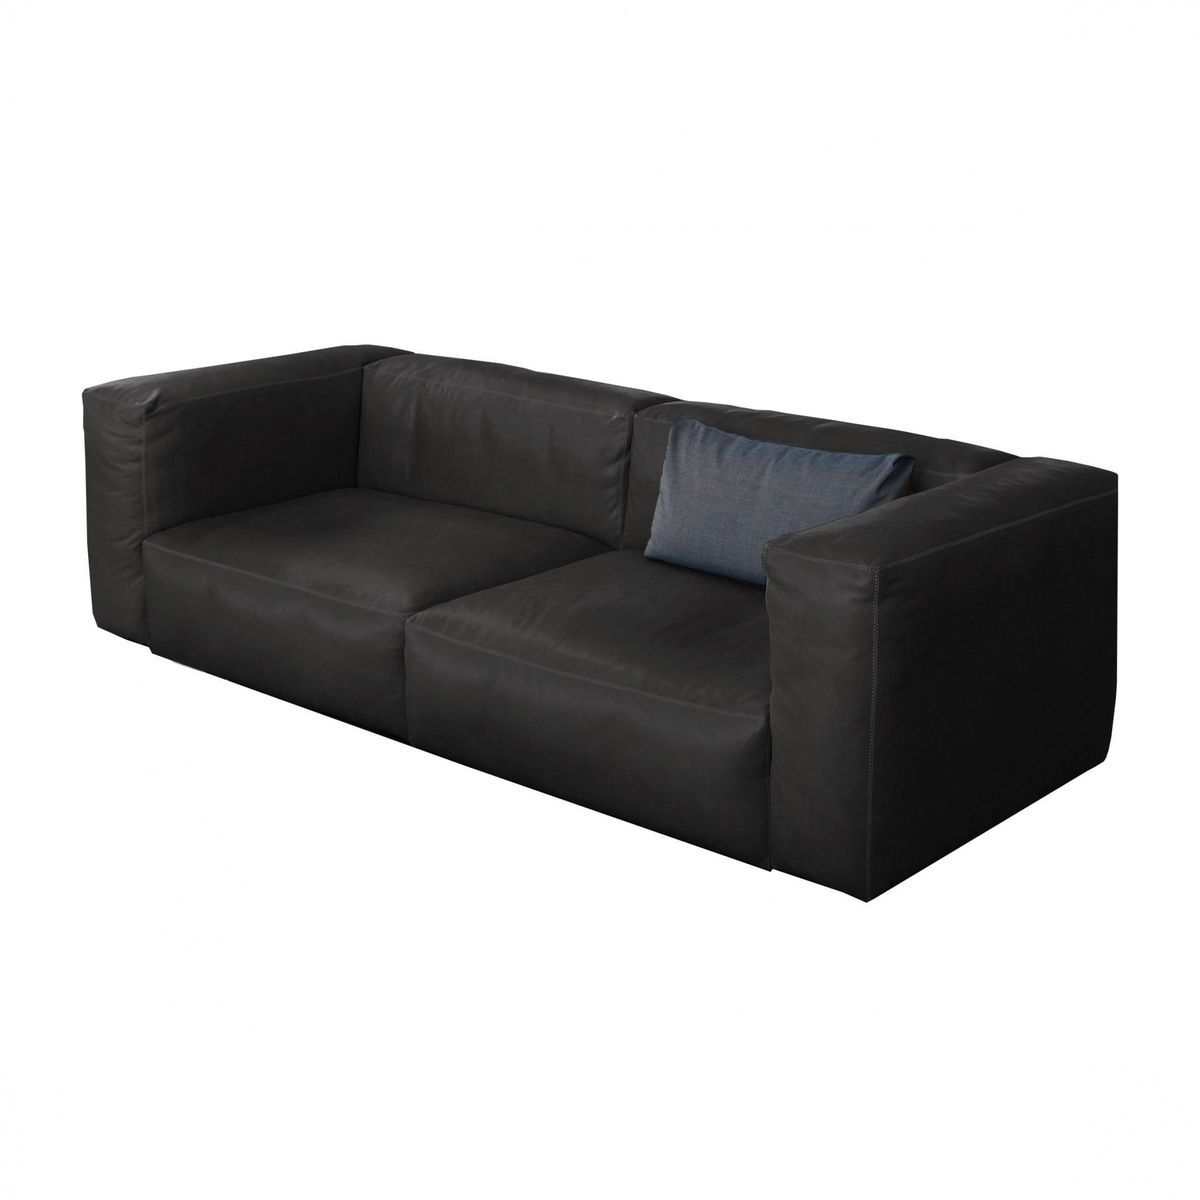 mags soft 2 5 seater leather sofa hay. Black Bedroom Furniture Sets. Home Design Ideas